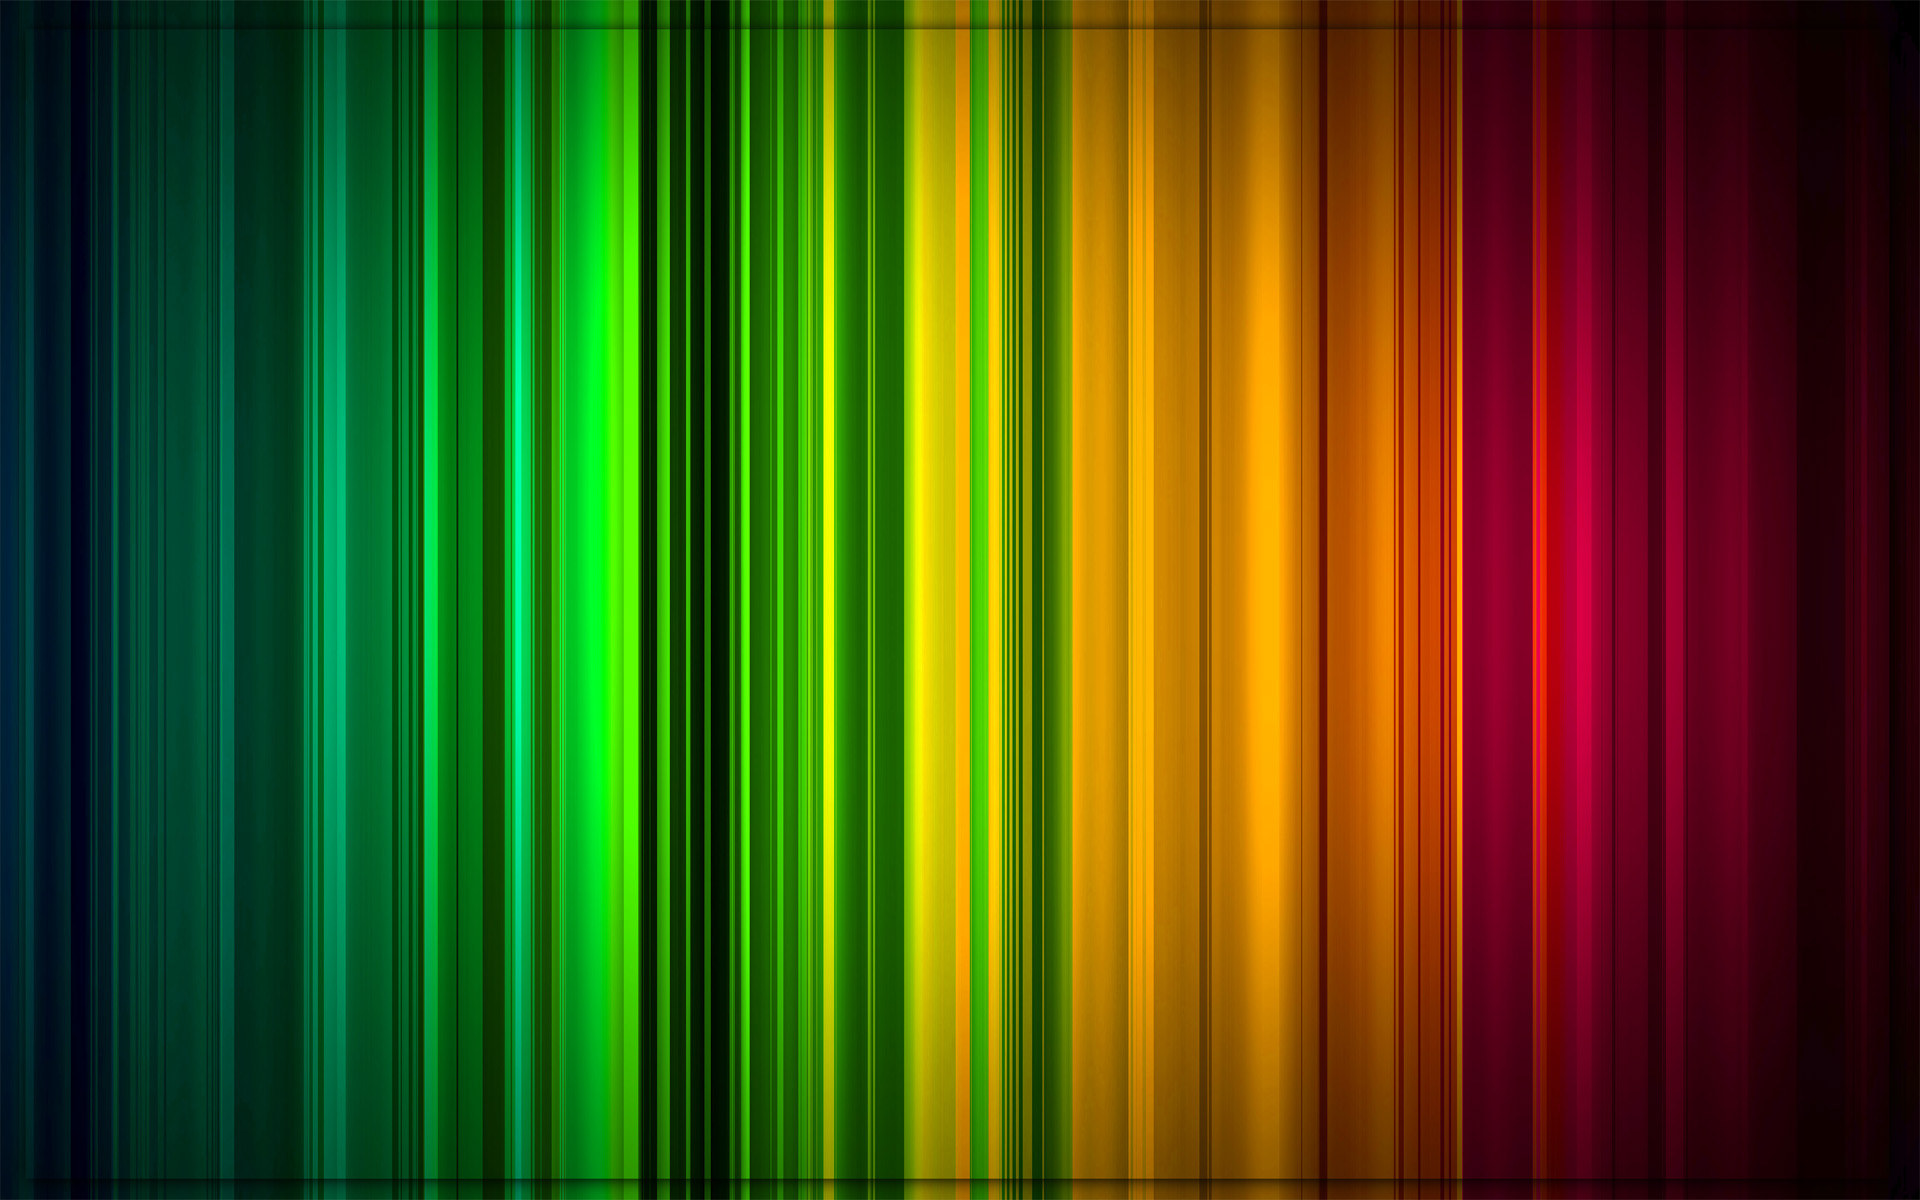 colour spectrum abstract background - photo #1